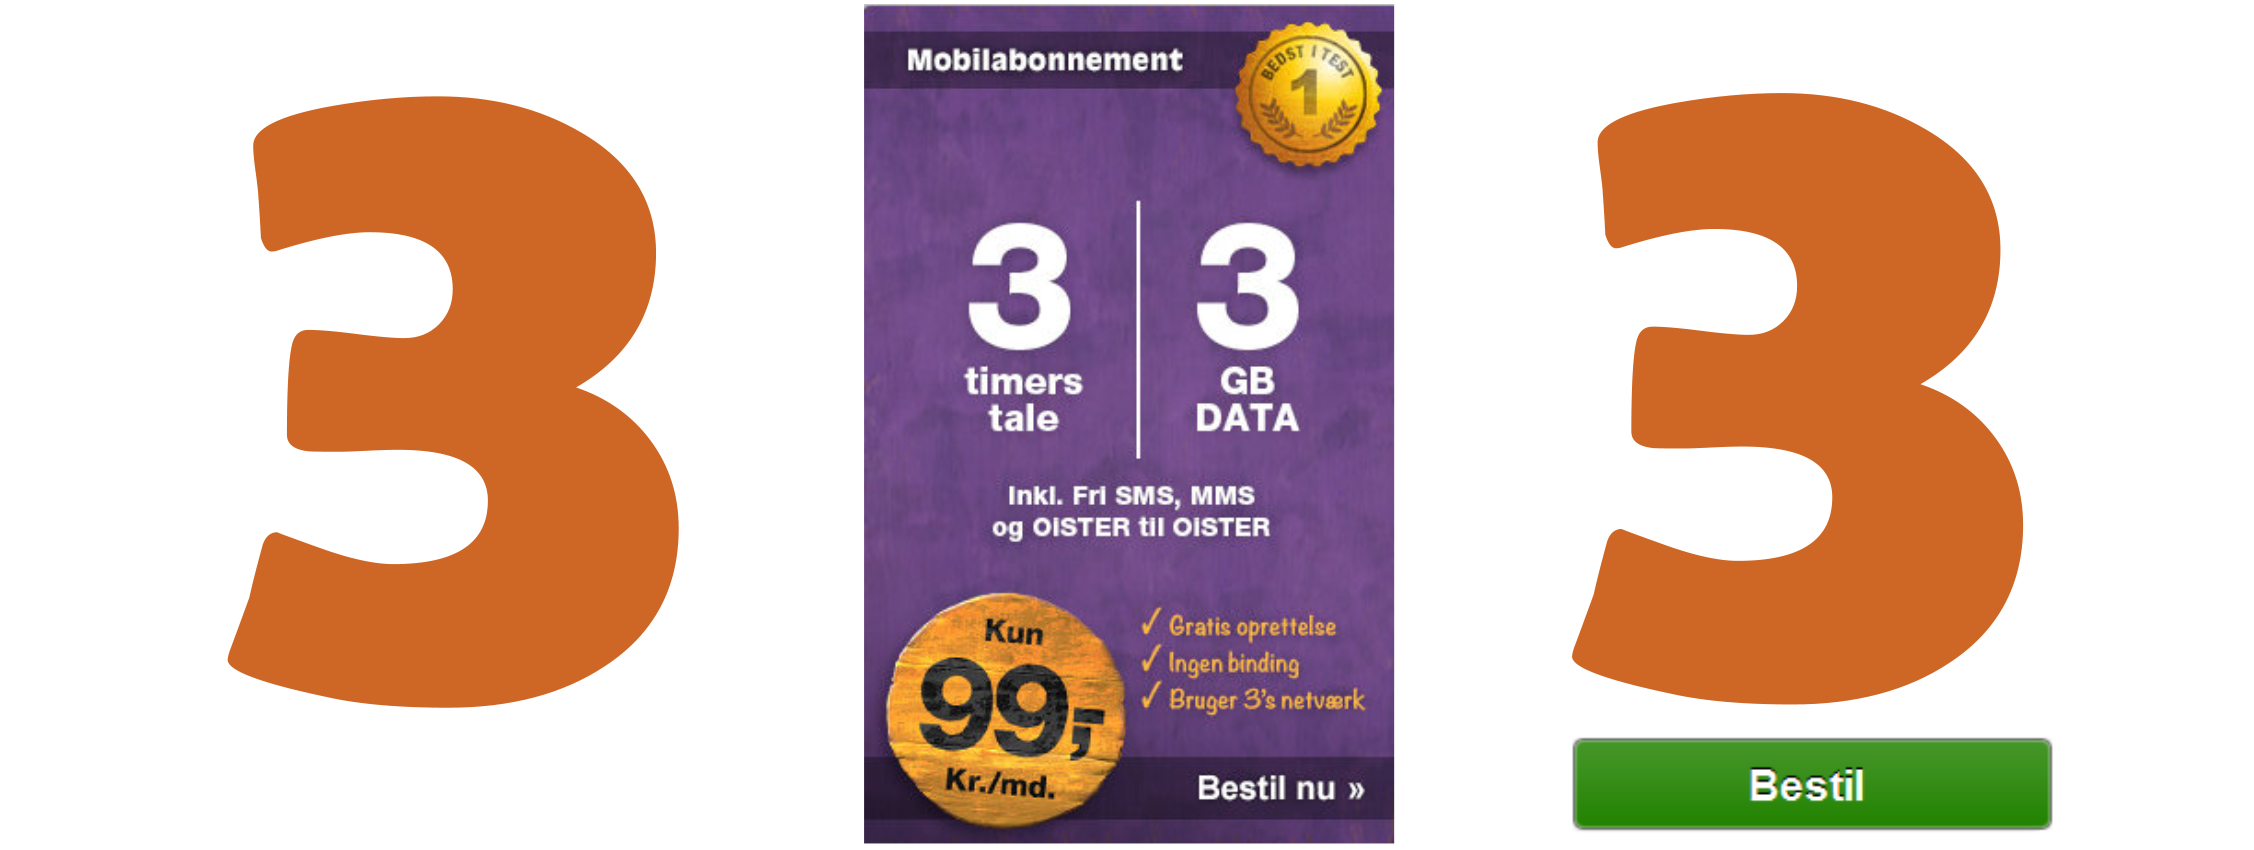 Oister 3 timer og 3 GB data  99 kr.